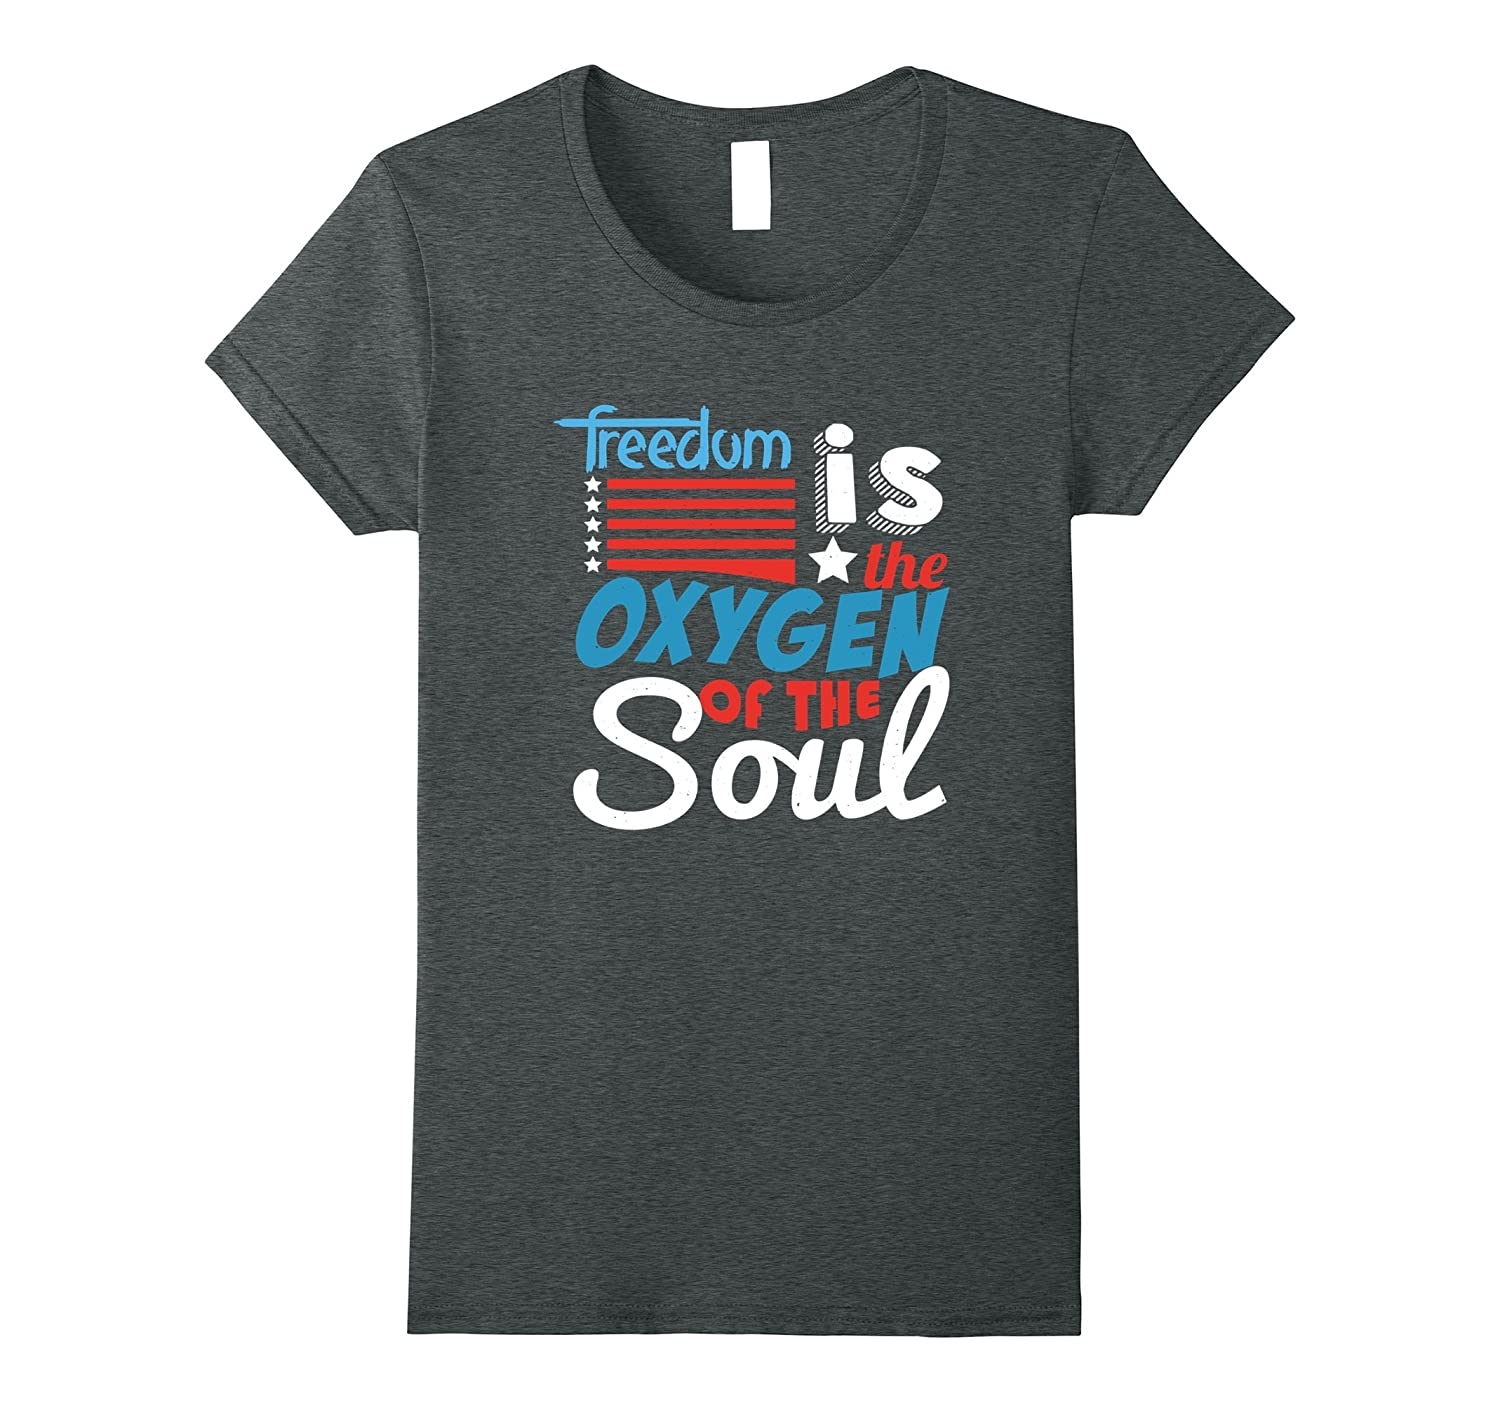 4th of July T-Shirt, Freedom is the oxygen of the soul tees